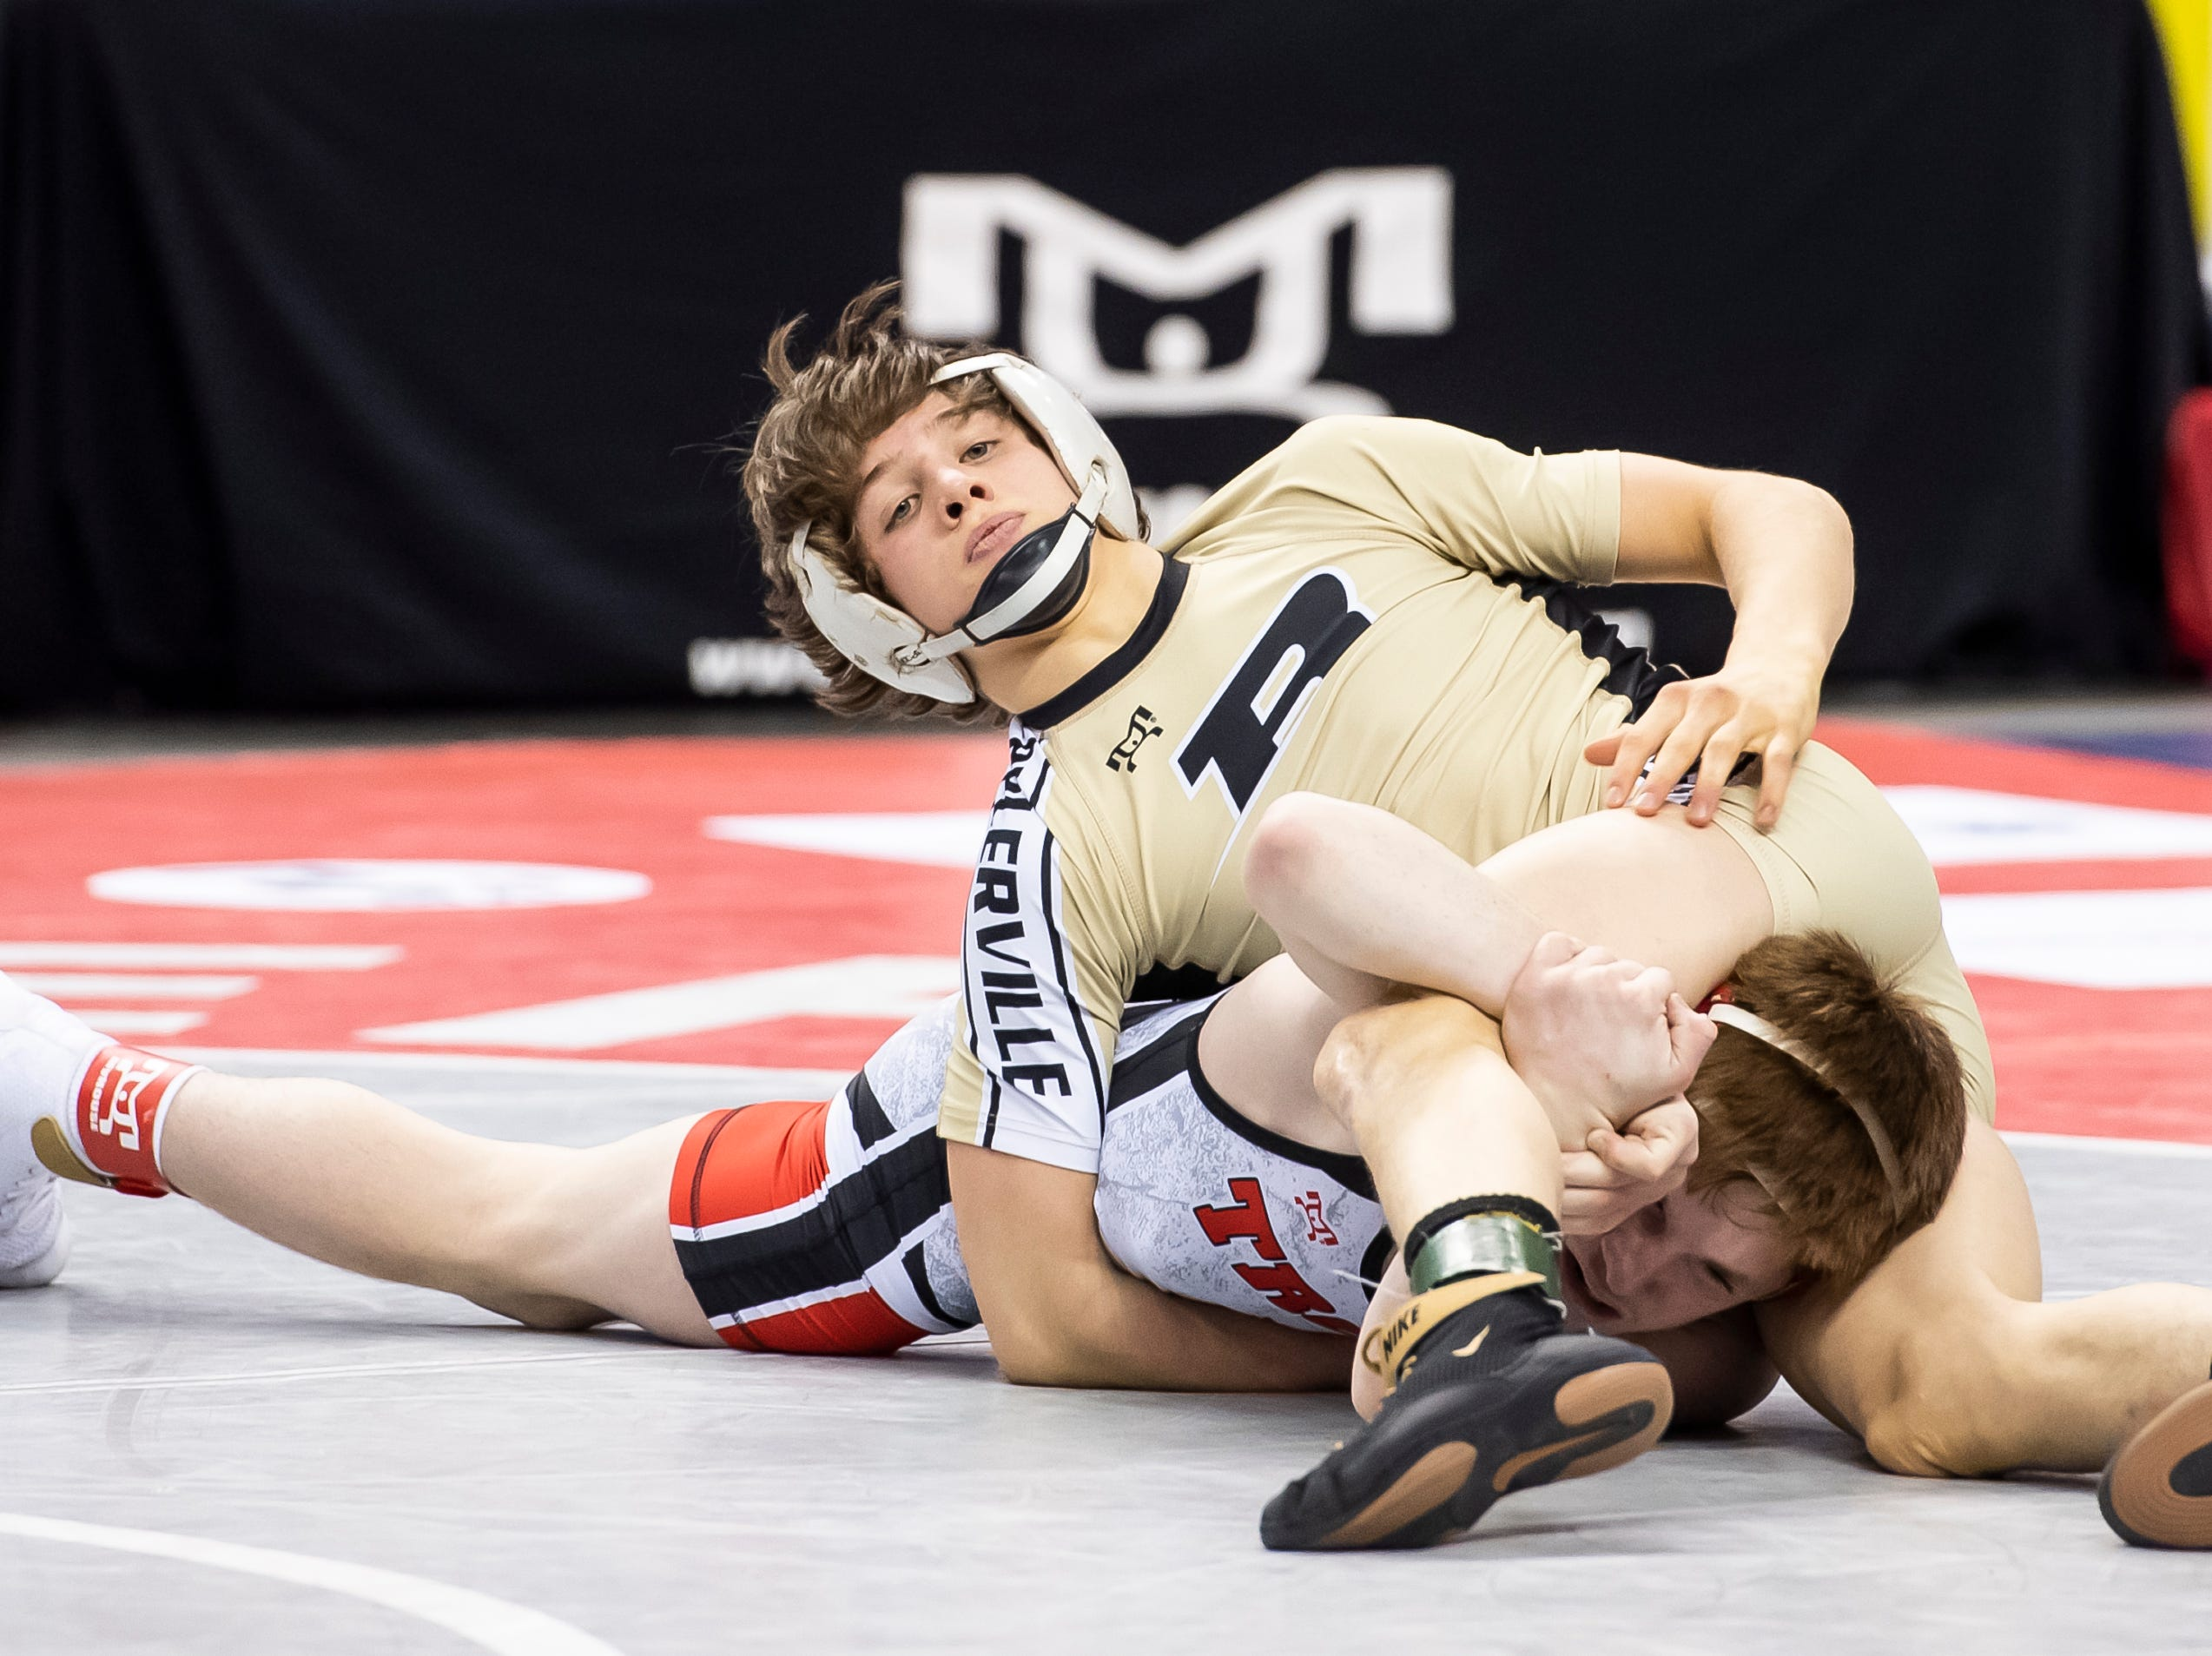 Biglerville's Levi Haines, top, wrestles Troy Area's Sheldon Seymour during the PIAA 2A 106-pound championship bout at the Giant Center in Hershey Saturday, March 9, 2019. Seymour won 5-4.